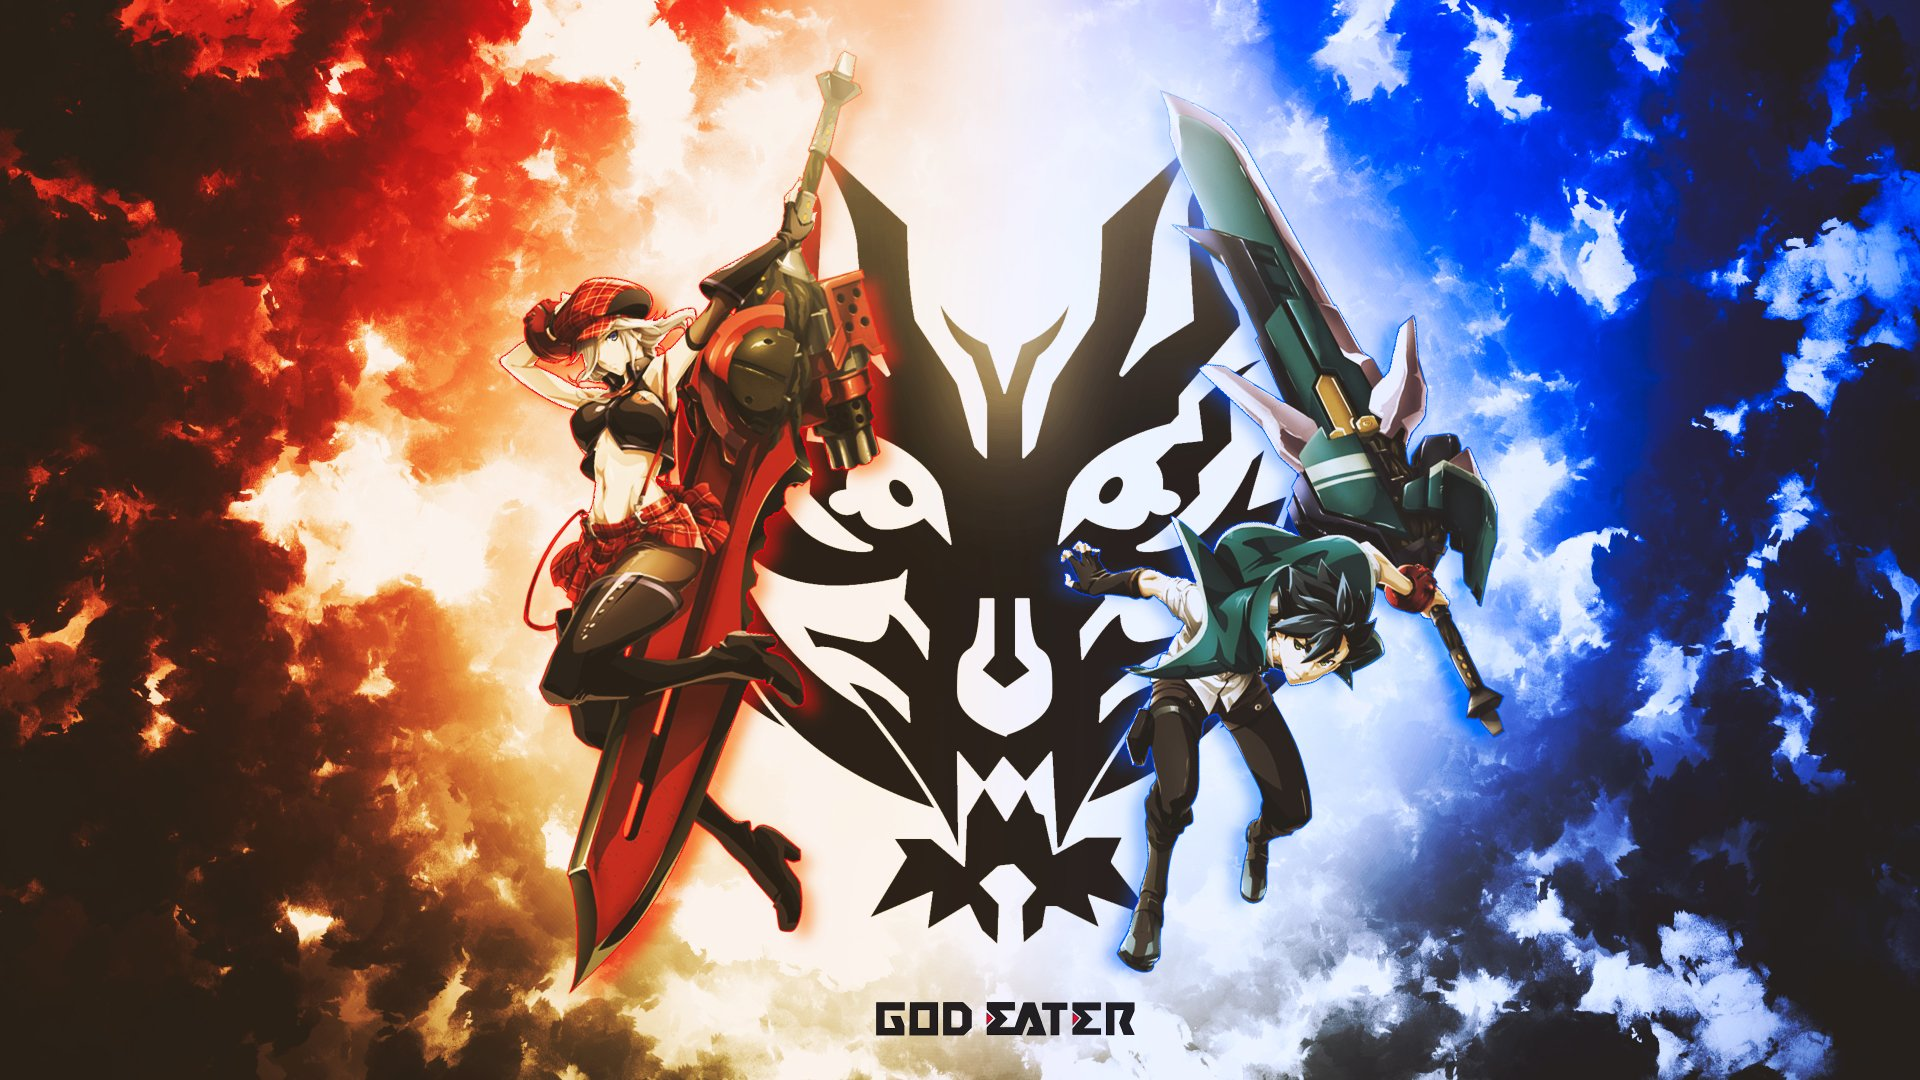 God eater 4k ultra hd fondo de pantalla and background for Fondo de pantalla 4k anime